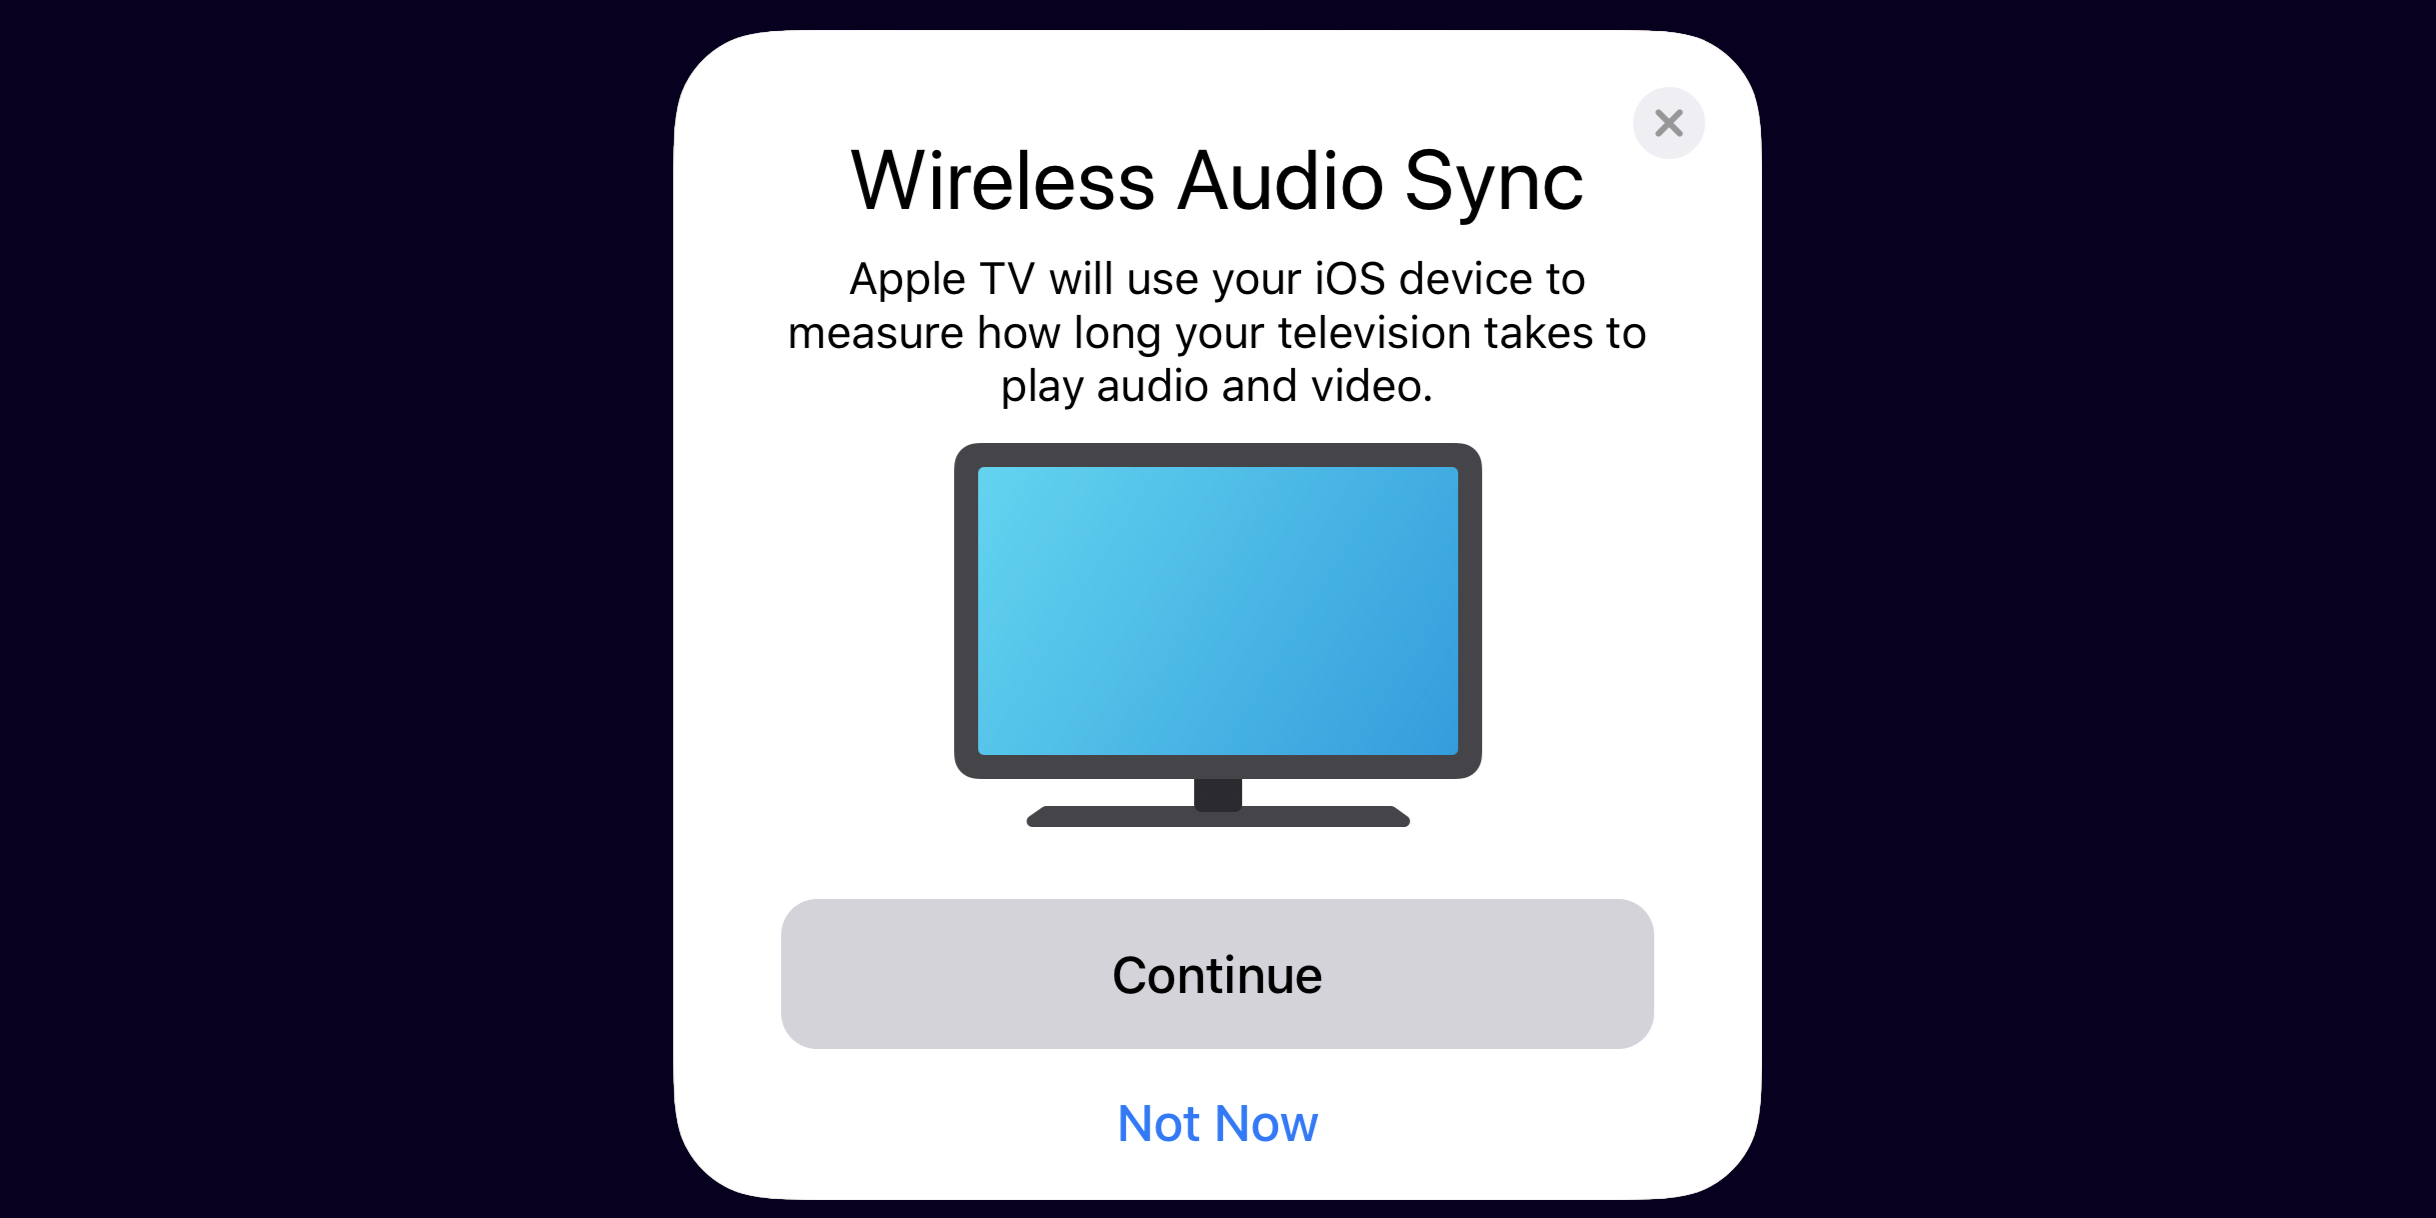 Kindle app for apple tv 4th gen not showing homekit devices